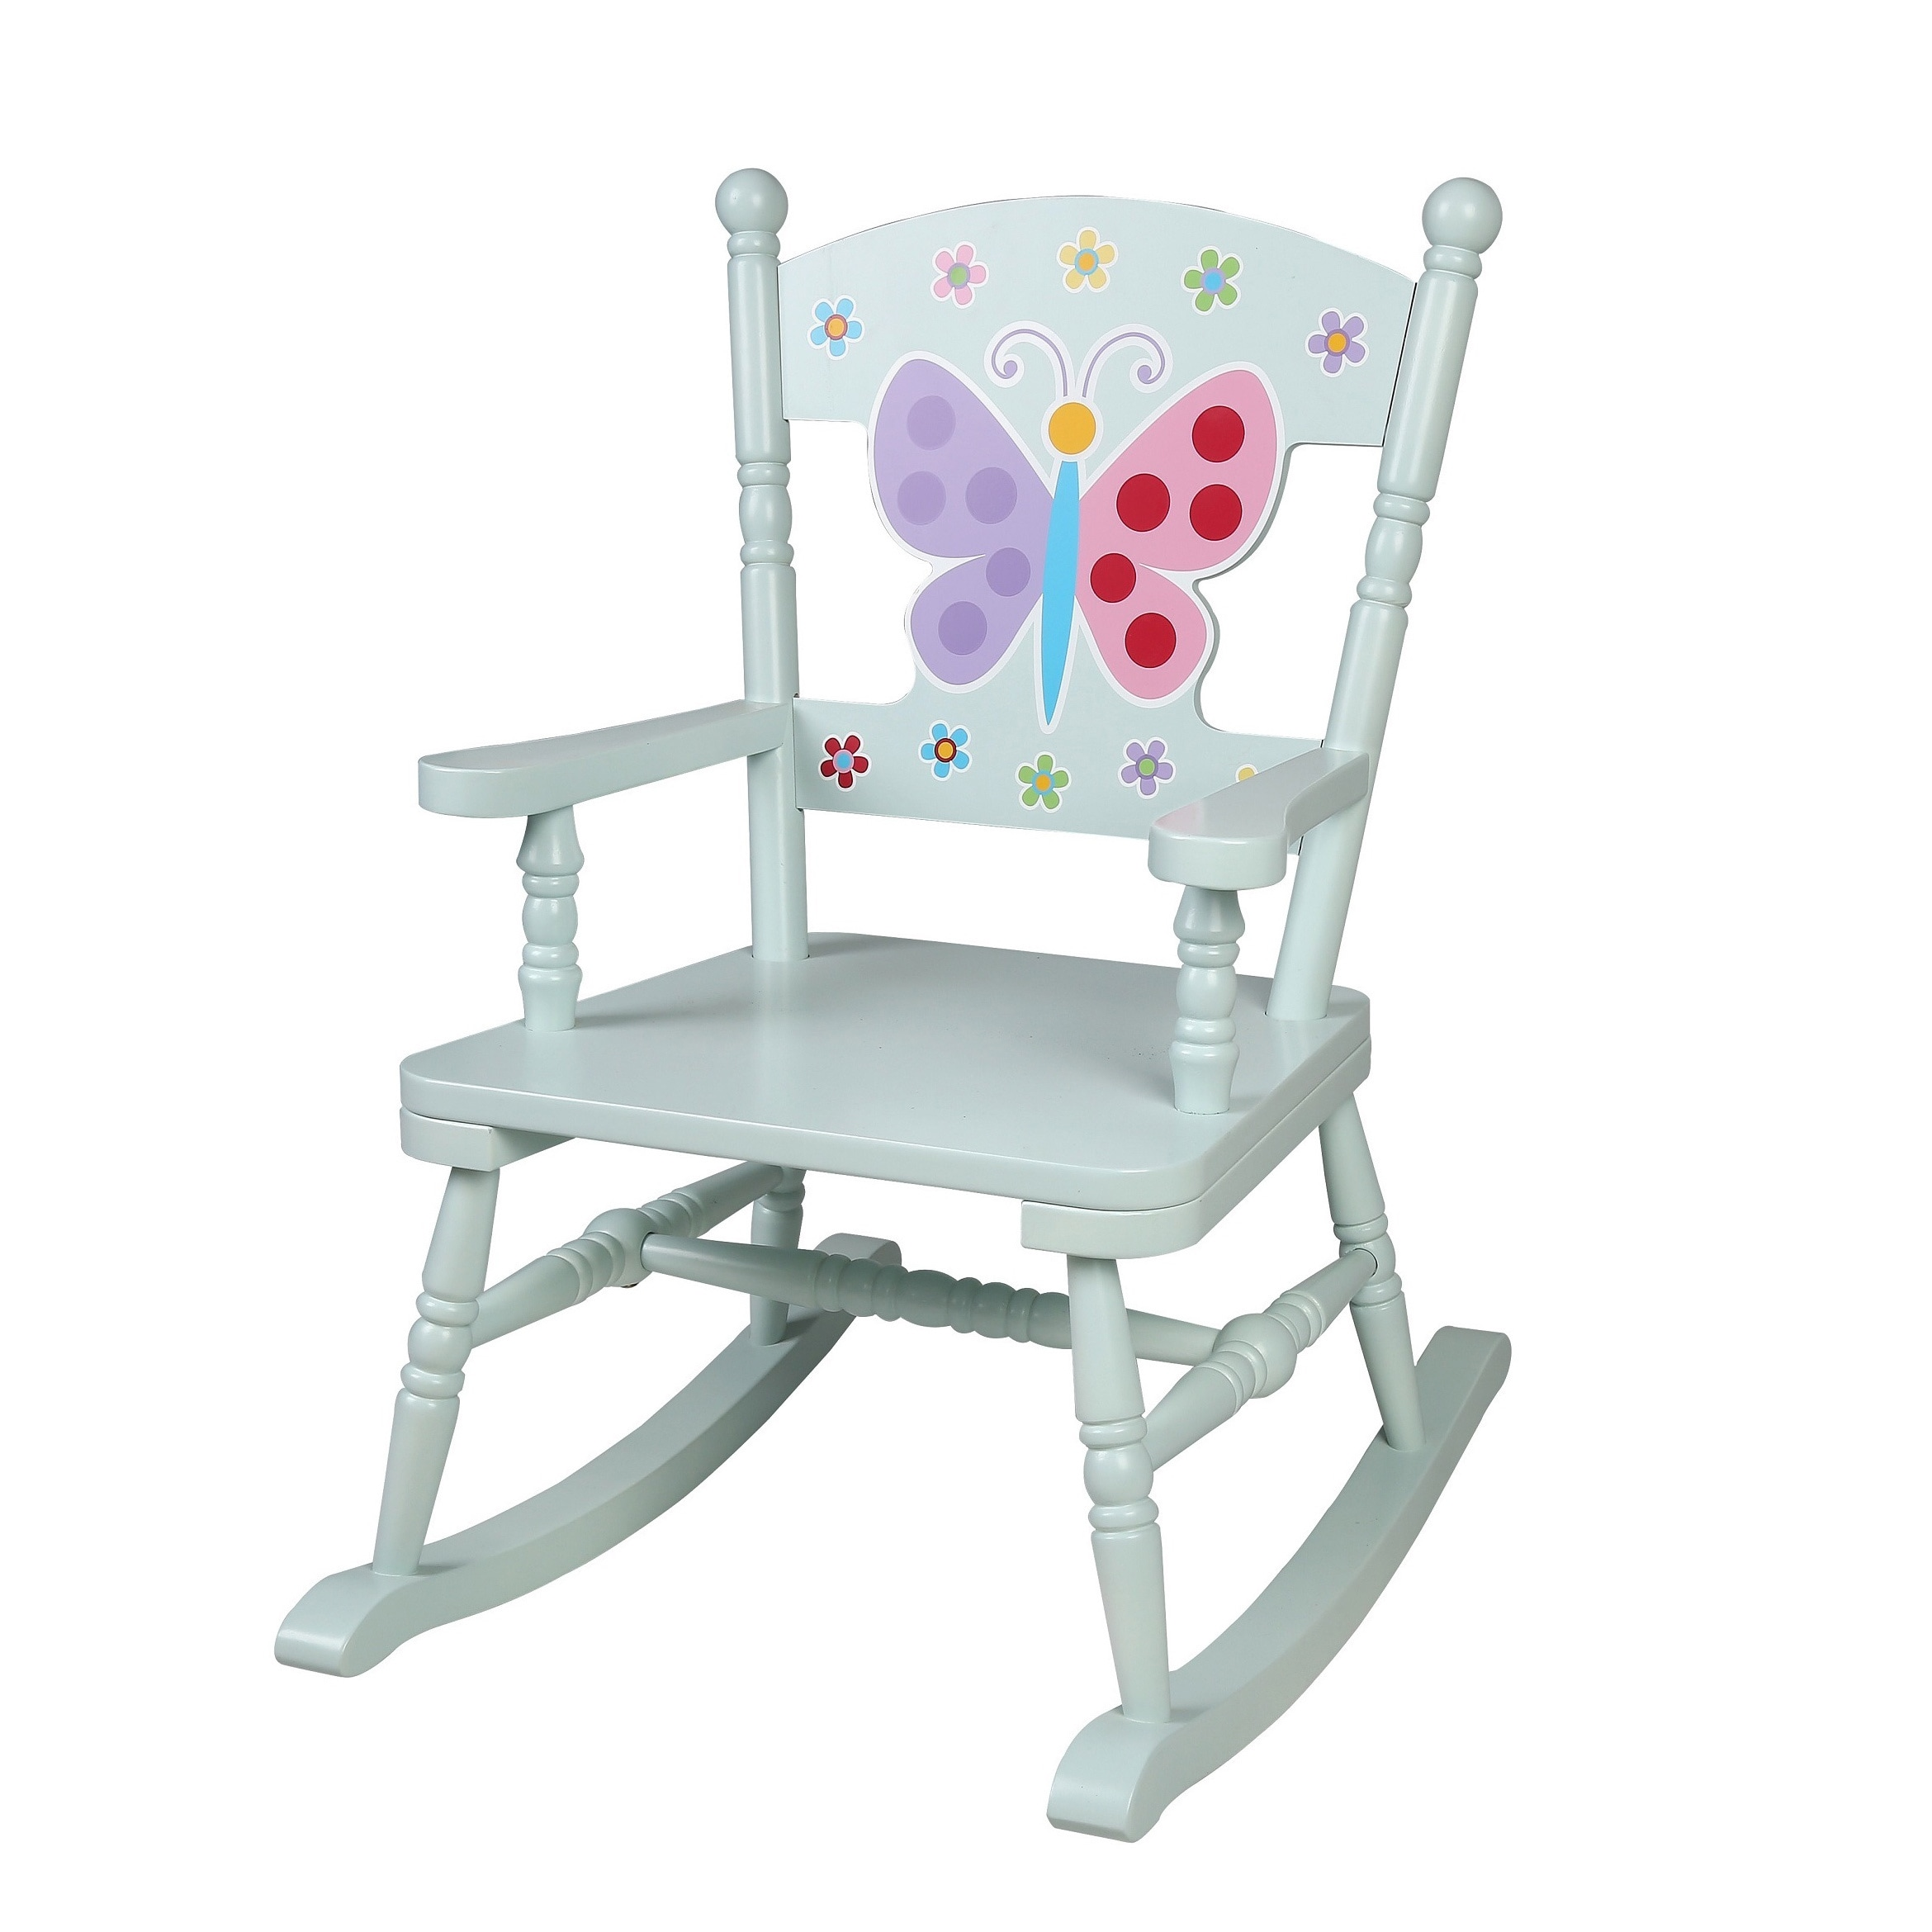 Pleasing Kids Toddler Rocking Chairs Shop Online At Overstock Machost Co Dining Chair Design Ideas Machostcouk